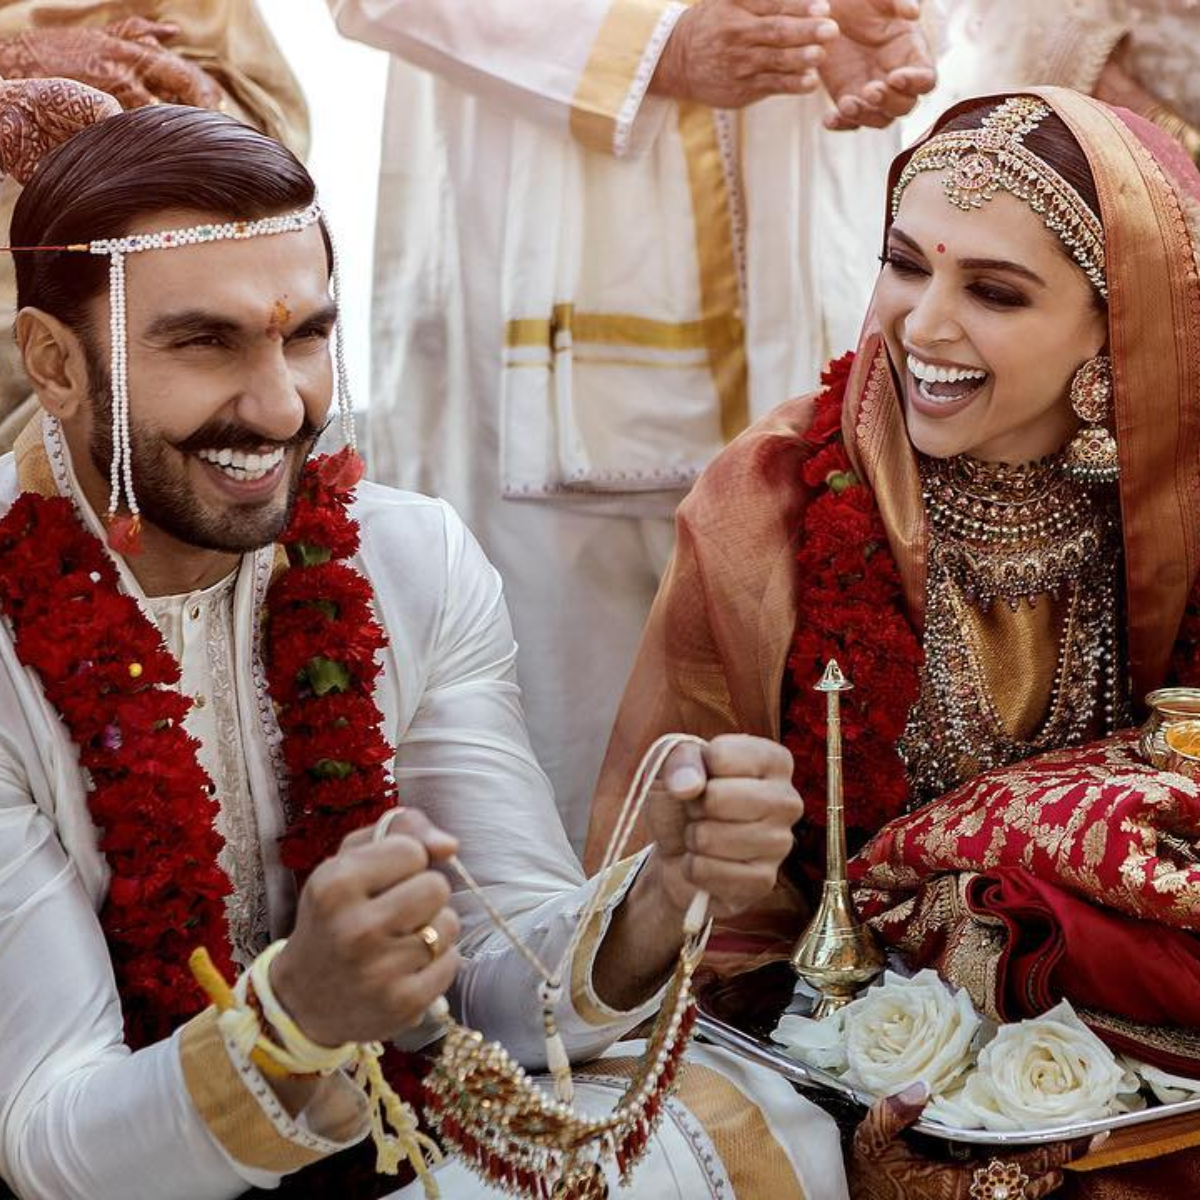 Deepika Padukone REVEALS being married to Ranveer Singh is like dating: One of the best decisions I've made